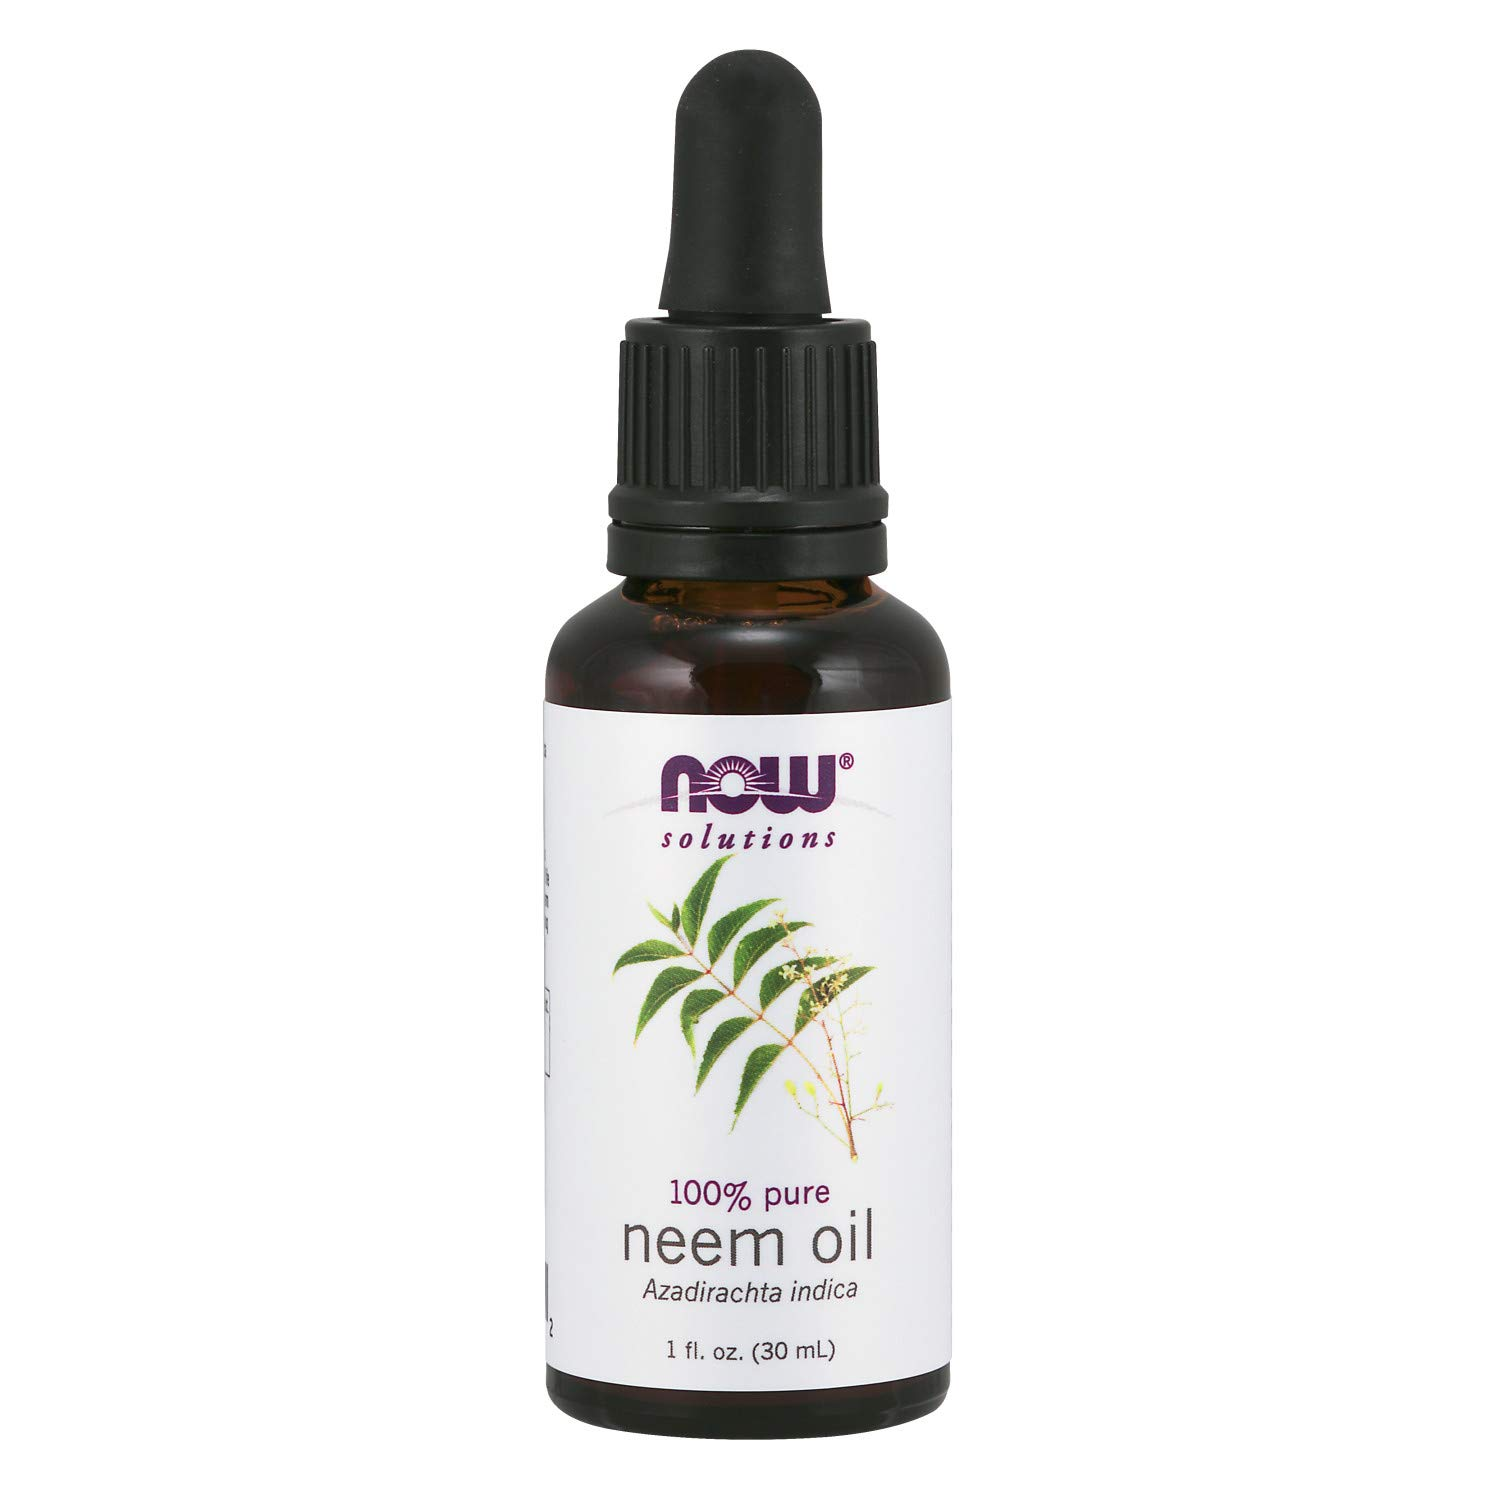 NOW Solutions, Neem Oil, 100% Pure, Made From Azadirachta Indica